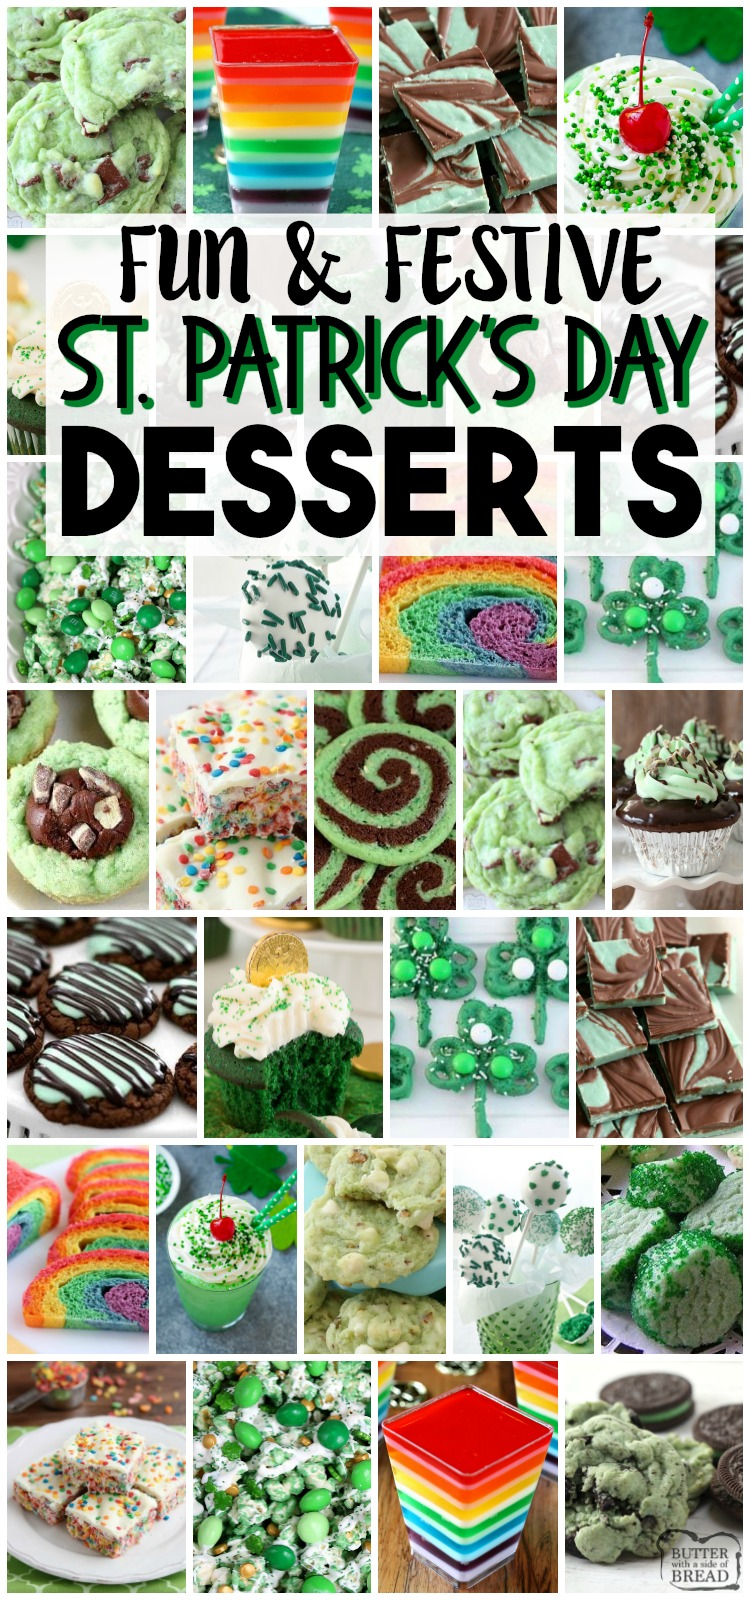 Fun & Festive St. Patrick's Day Food recipes from cookies to jello! Collection of EASY St. Patrick's Day recipes for everyone! #StPatricksDay #green #rainbow #food #recipes from BUTTER WITH A SIDE OF BREAD